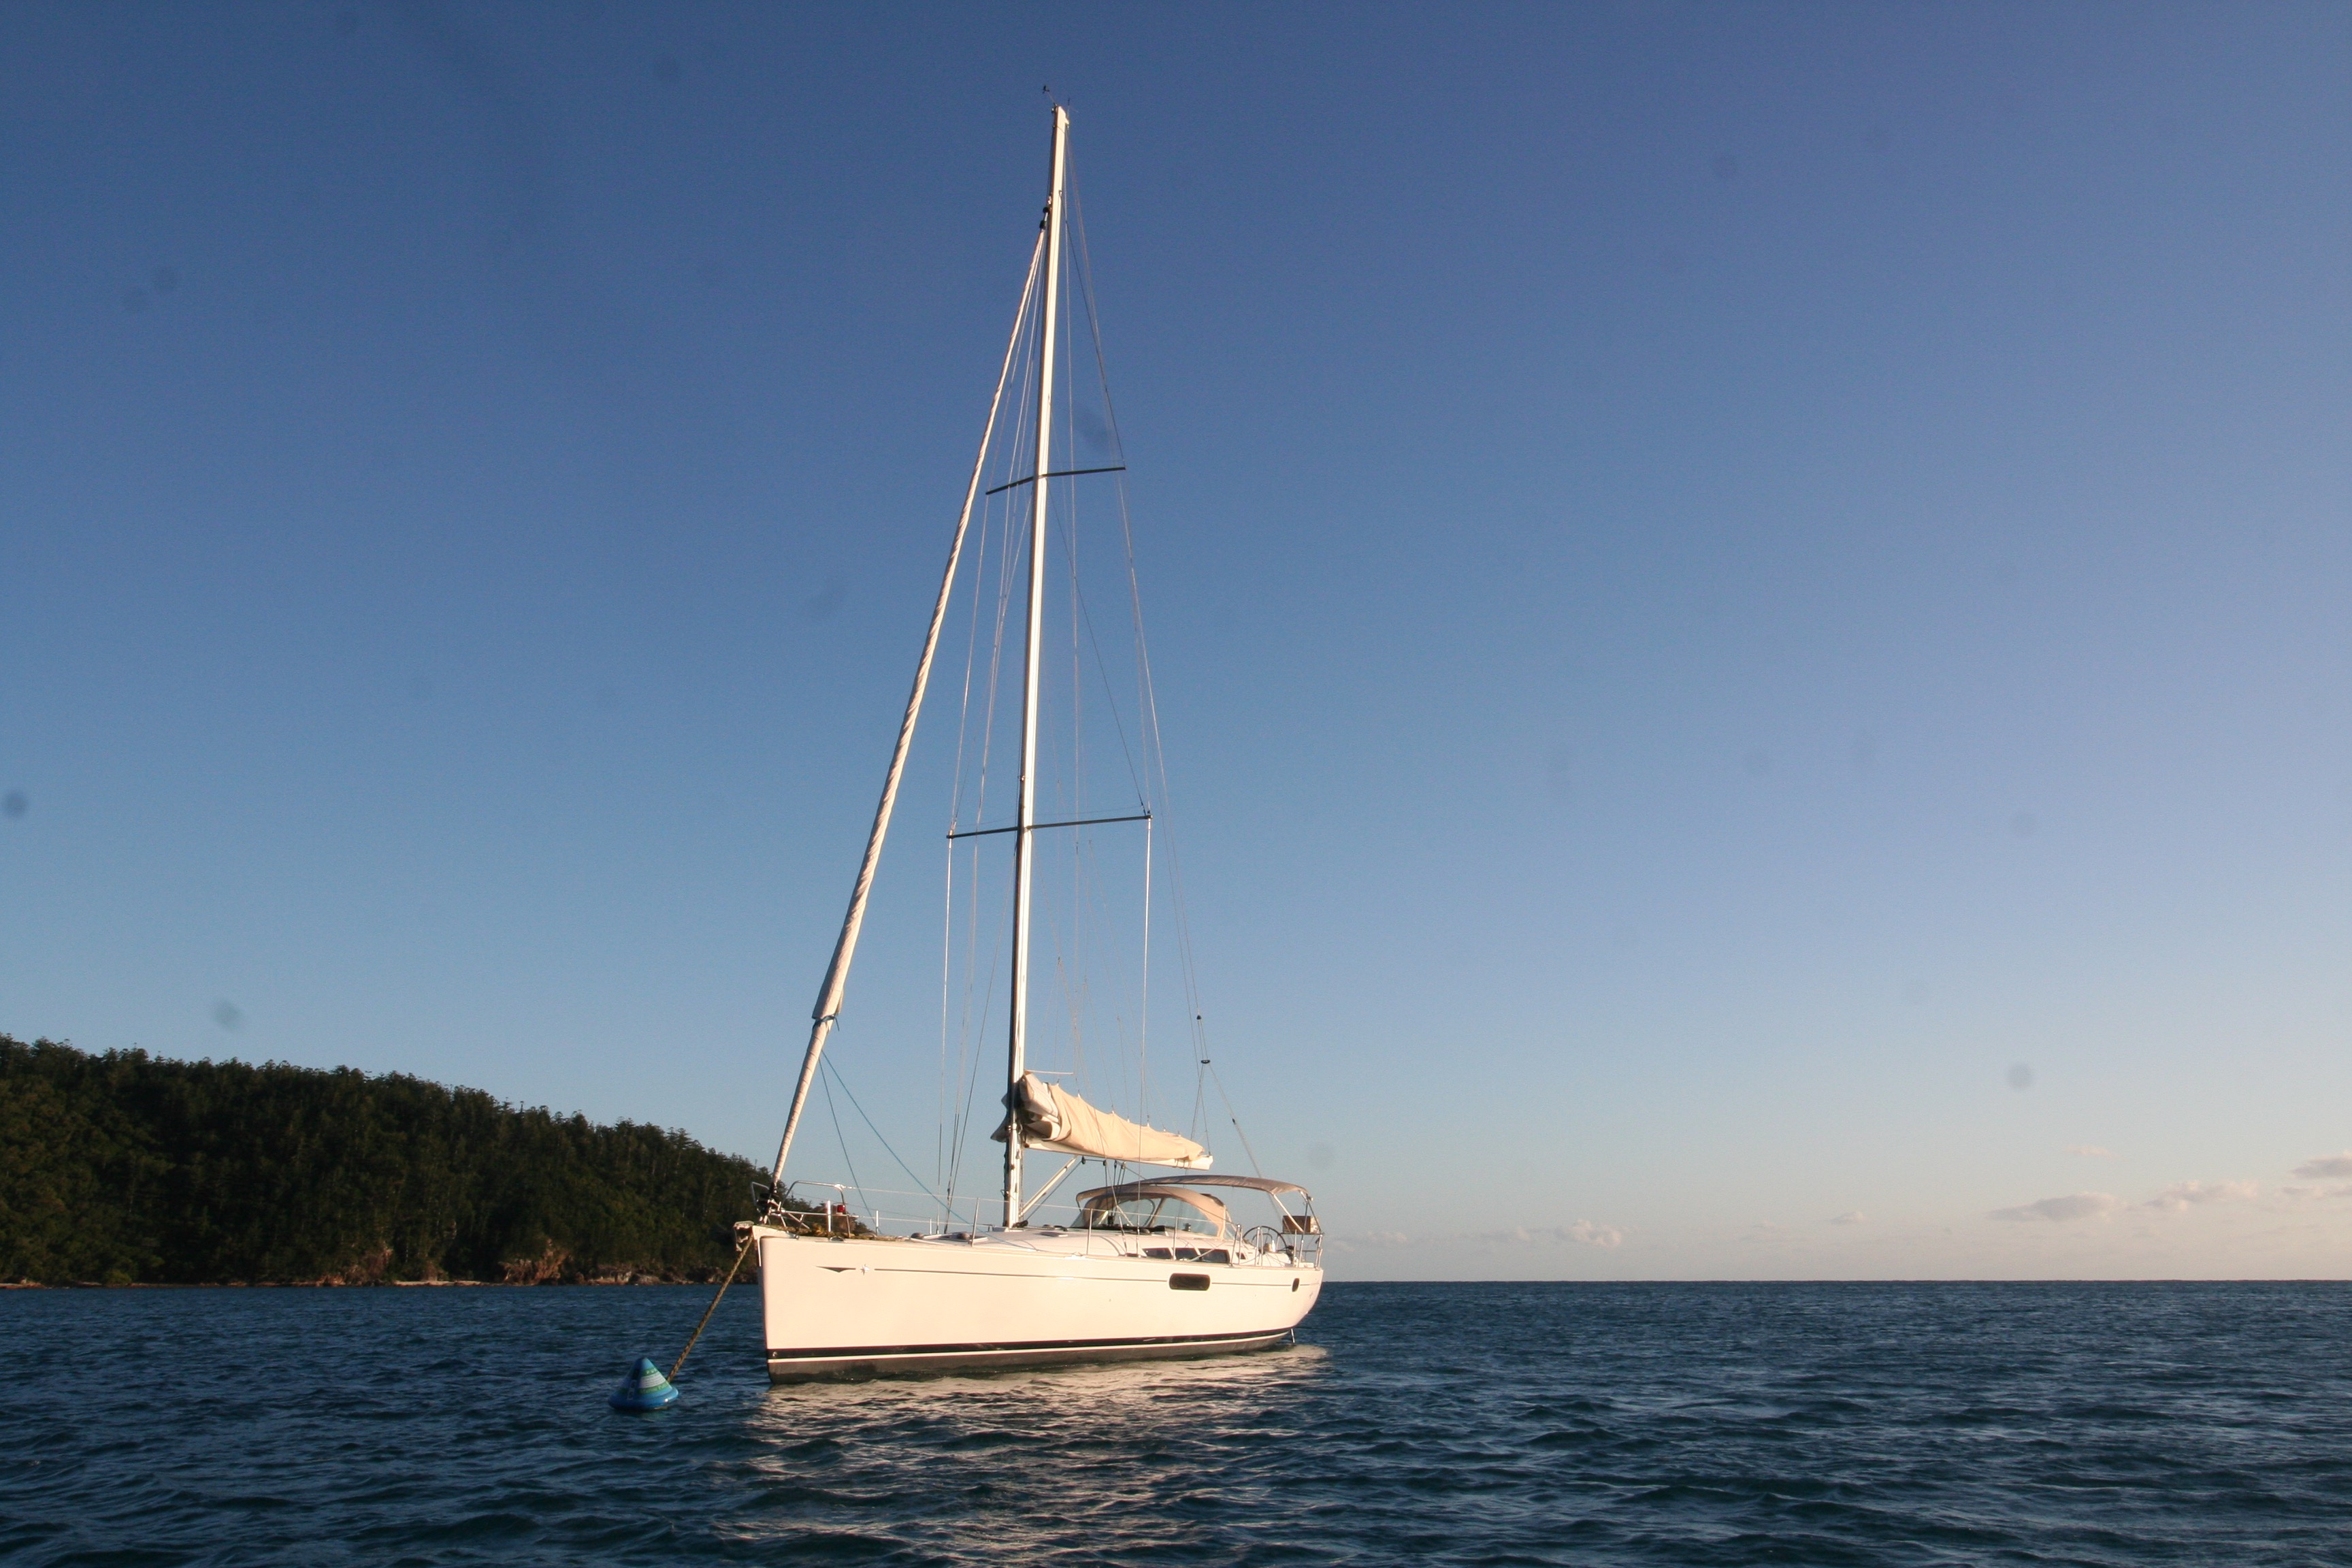 Avant at anchor, Butterfly Bay